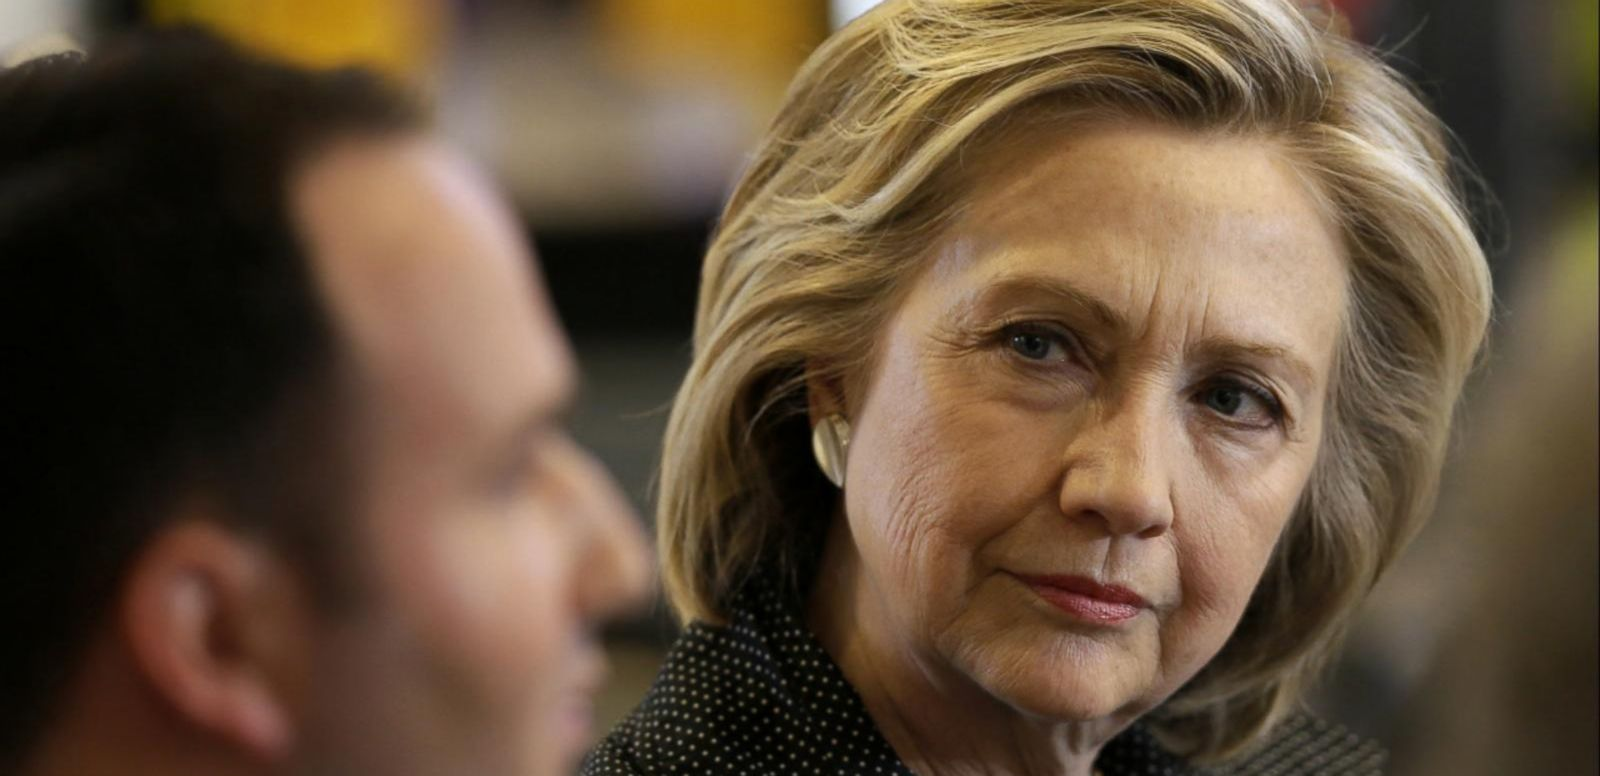 VIDEO: The First Batch of Hillary Clinton's Emails to Be Released